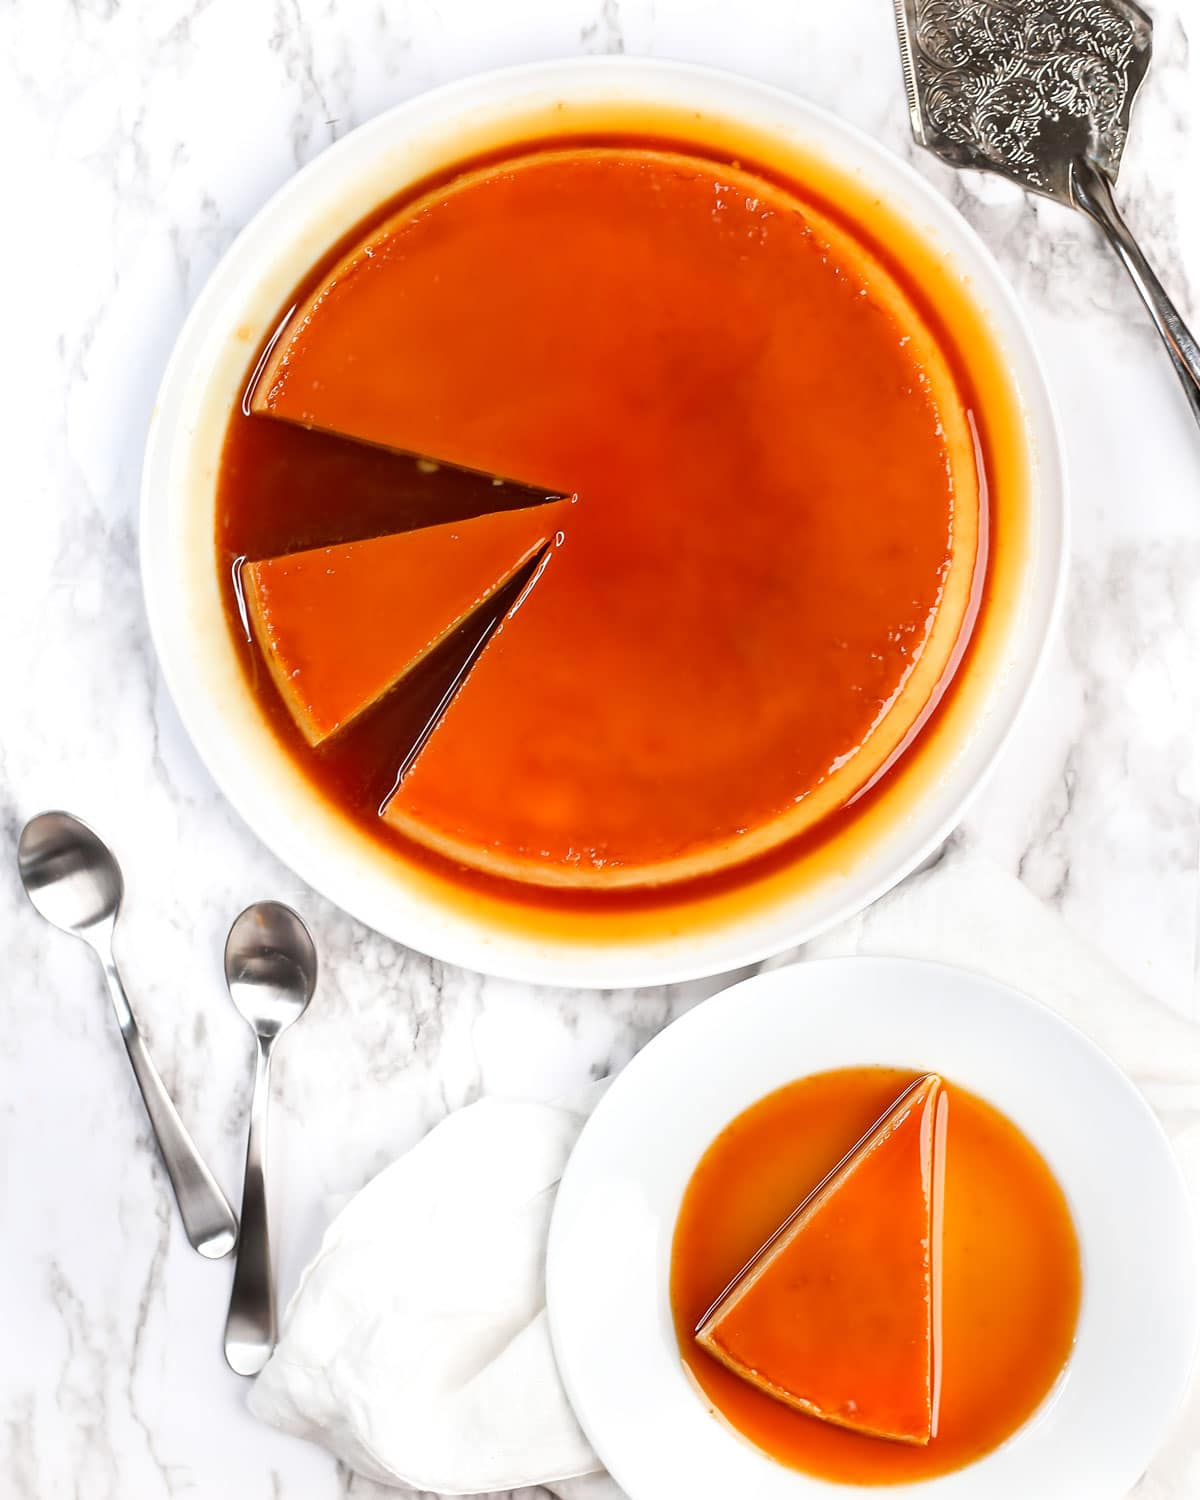 overhead photo of flan or creme caramel with a slice served on a plate